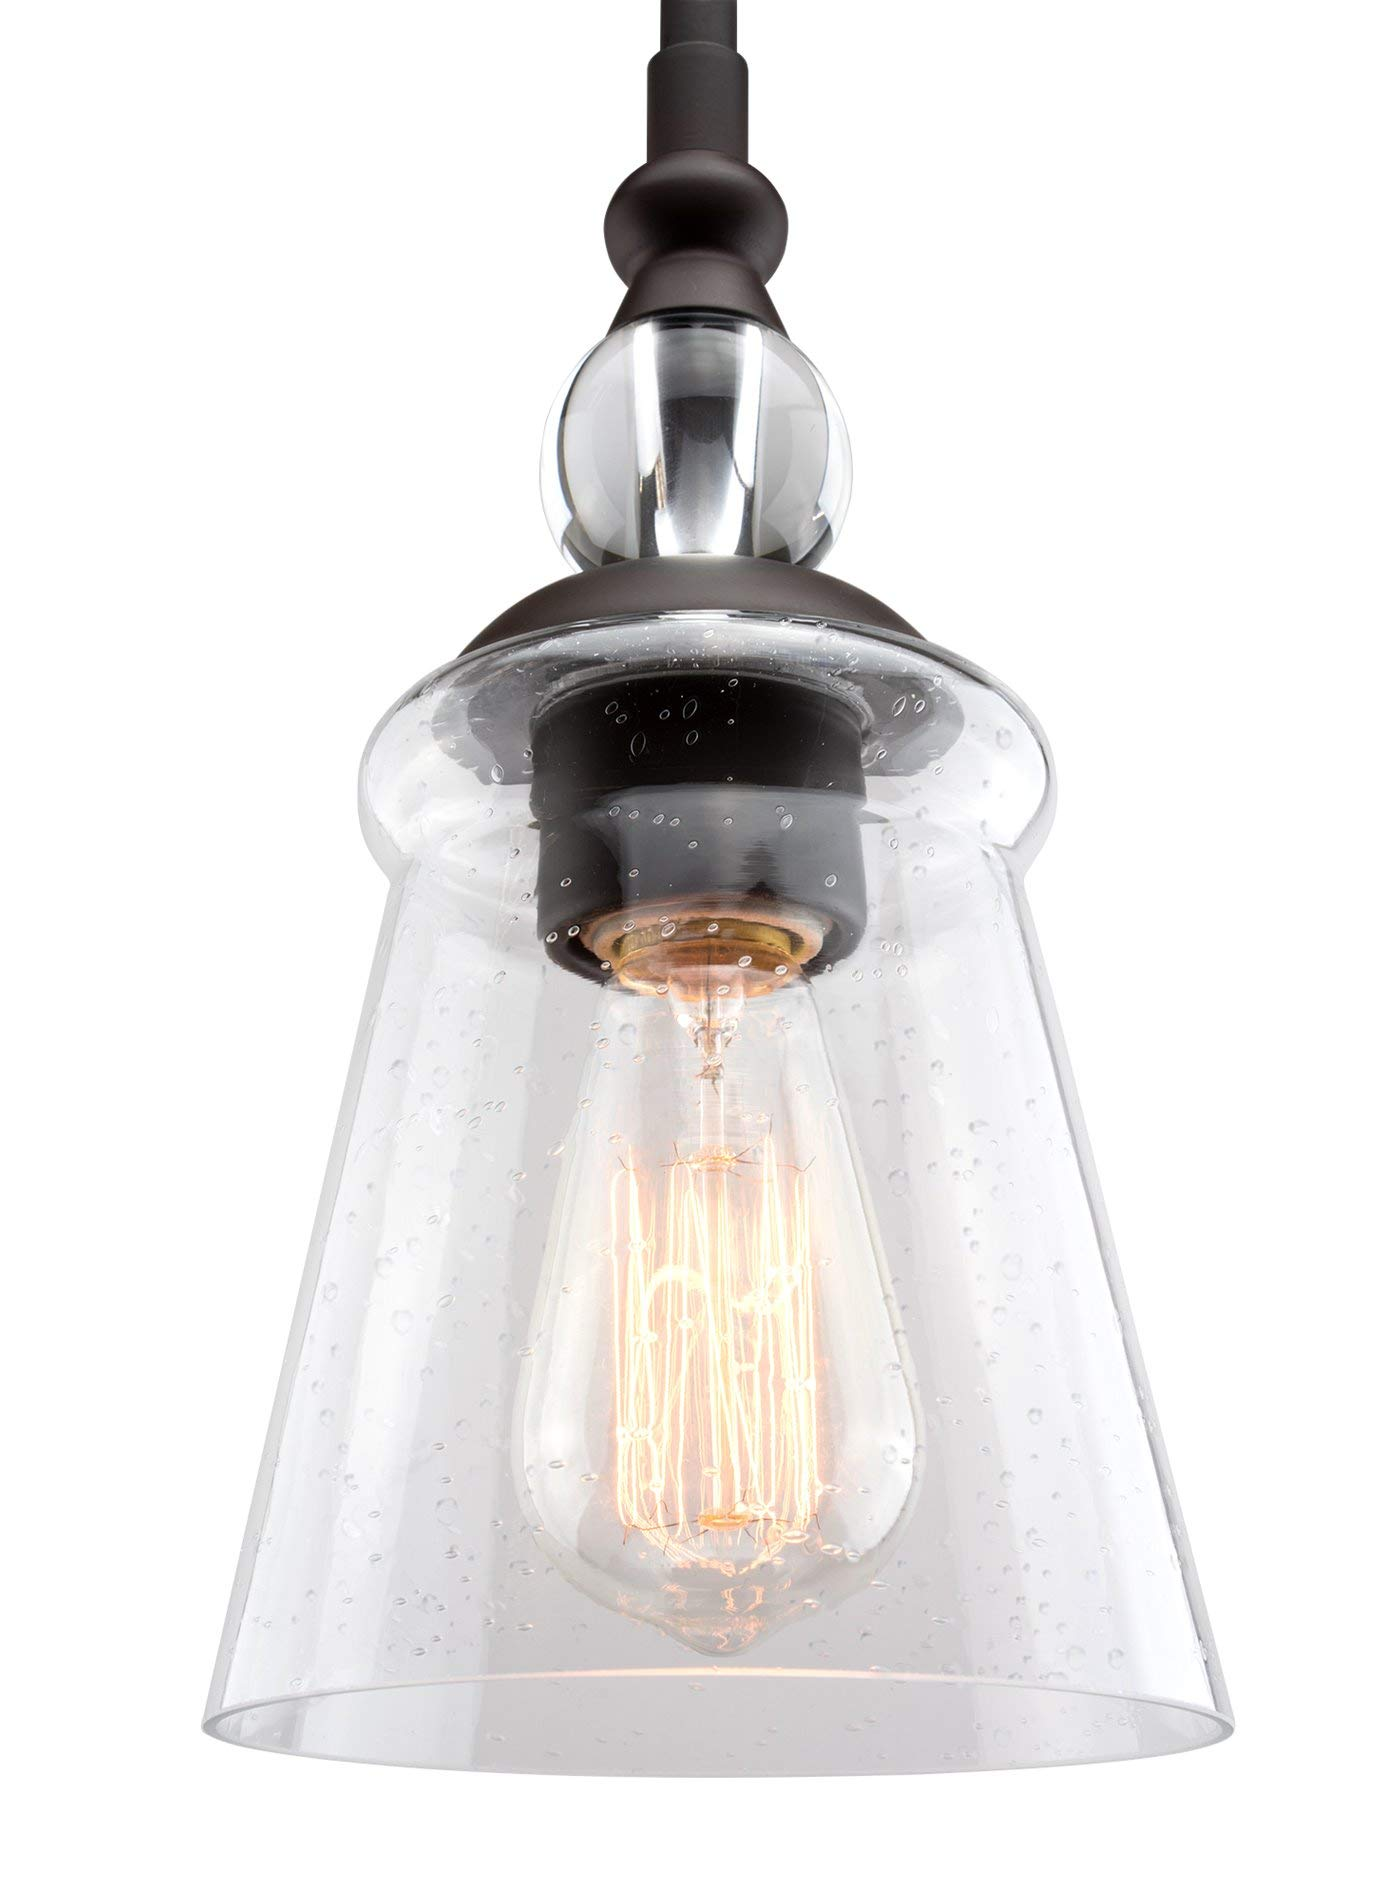 Kira Home Glory 5.5'' Industrial Hanging Pendant Ceiling Light, Bubble Glass Shade, Adjustable Length, Oil-Rubbed Bronze Finish by Kira Home